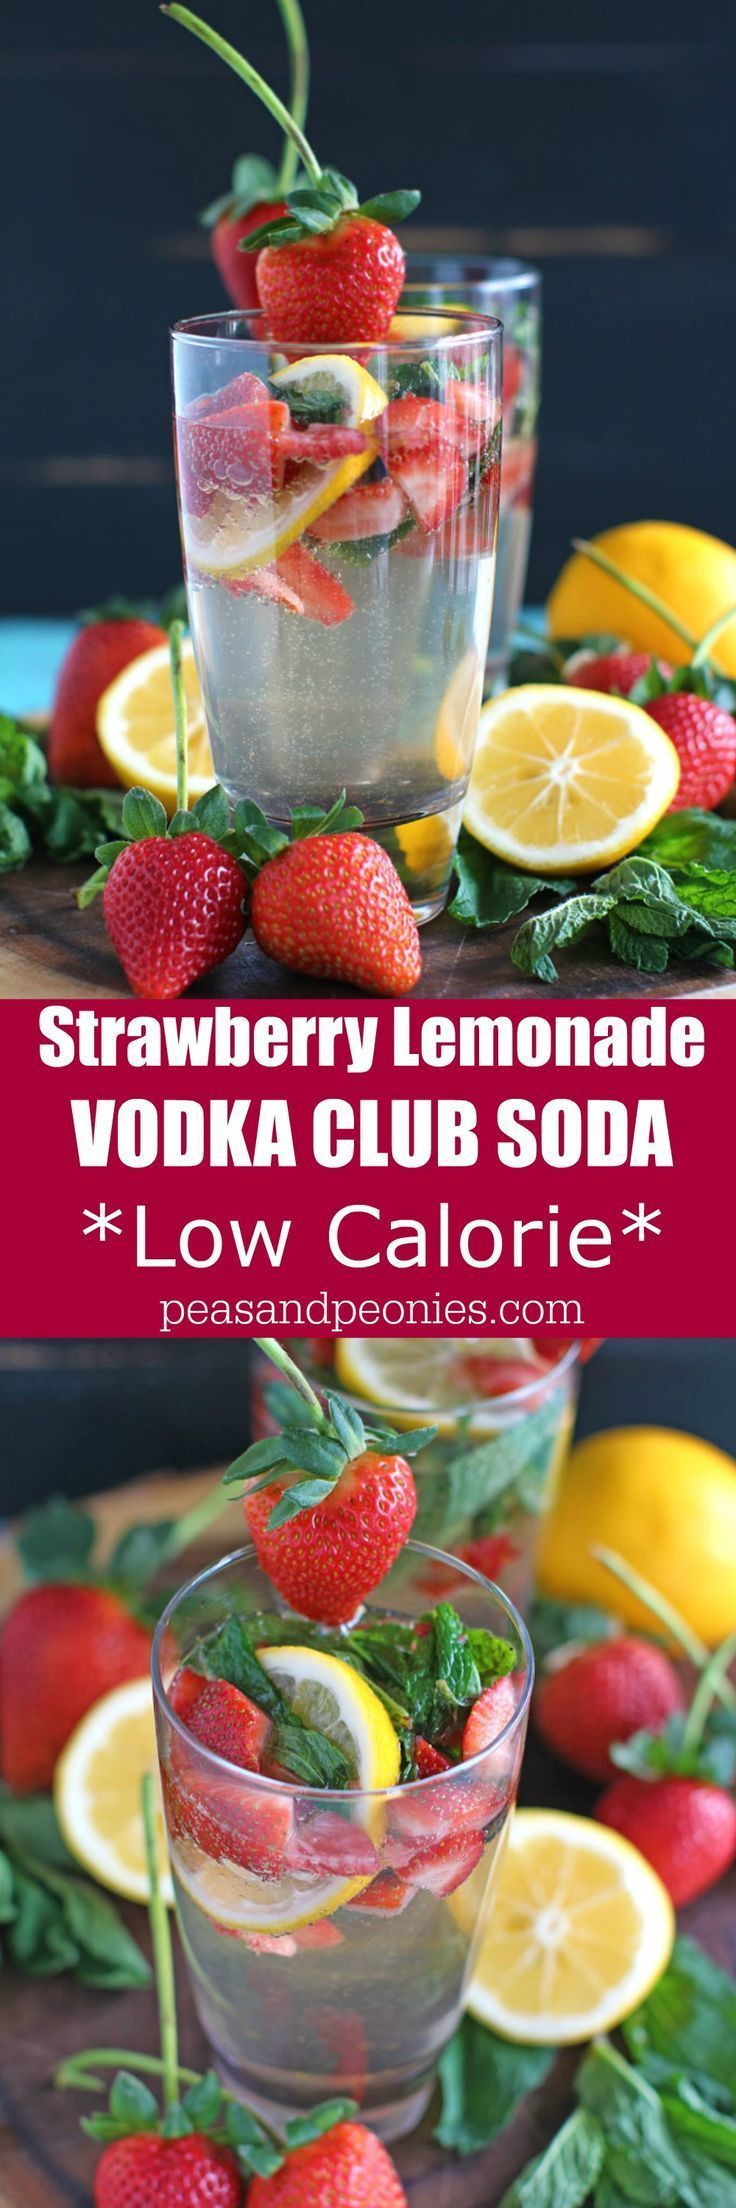 Strawberry Lemonade Vodka Club Soda is a low calorie and flavorful drink loaded with fresh strawberries, Meyer lemon and fresh mint leaves.